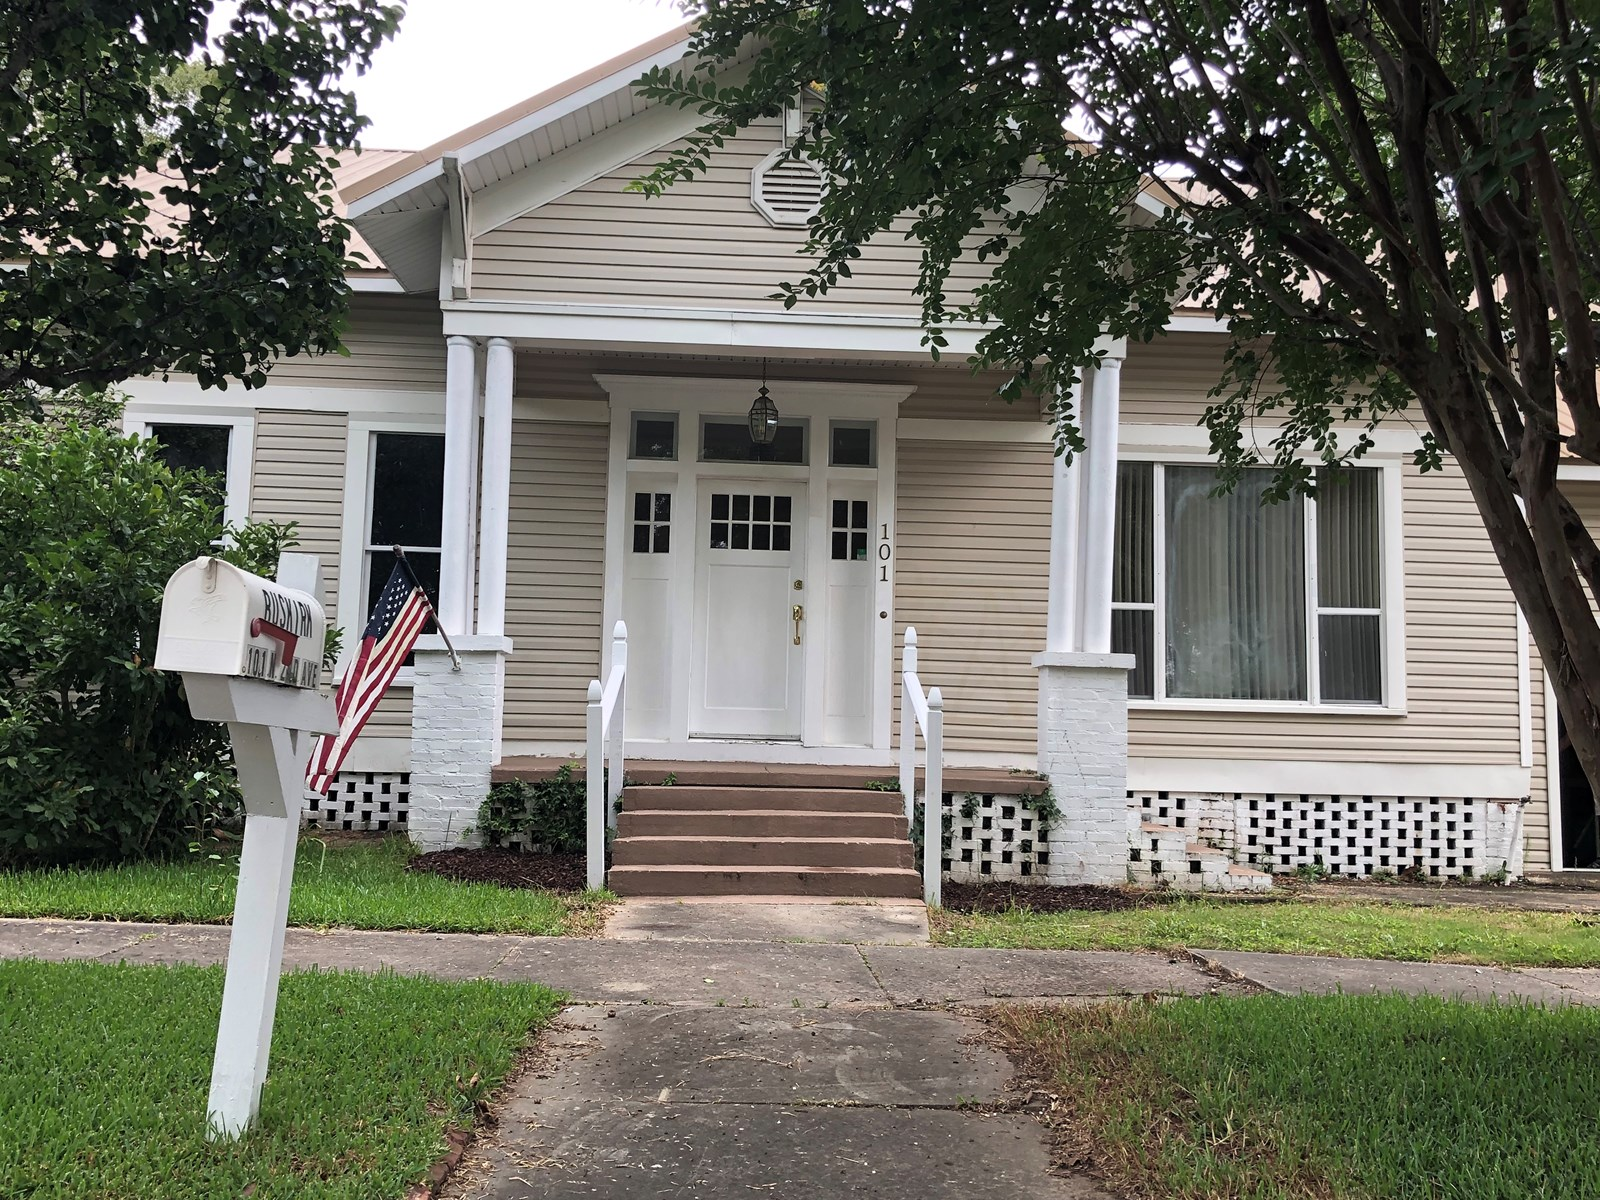 3B/3B OLDER HOME FOR SALE IN HARTFORD, ALABAMA